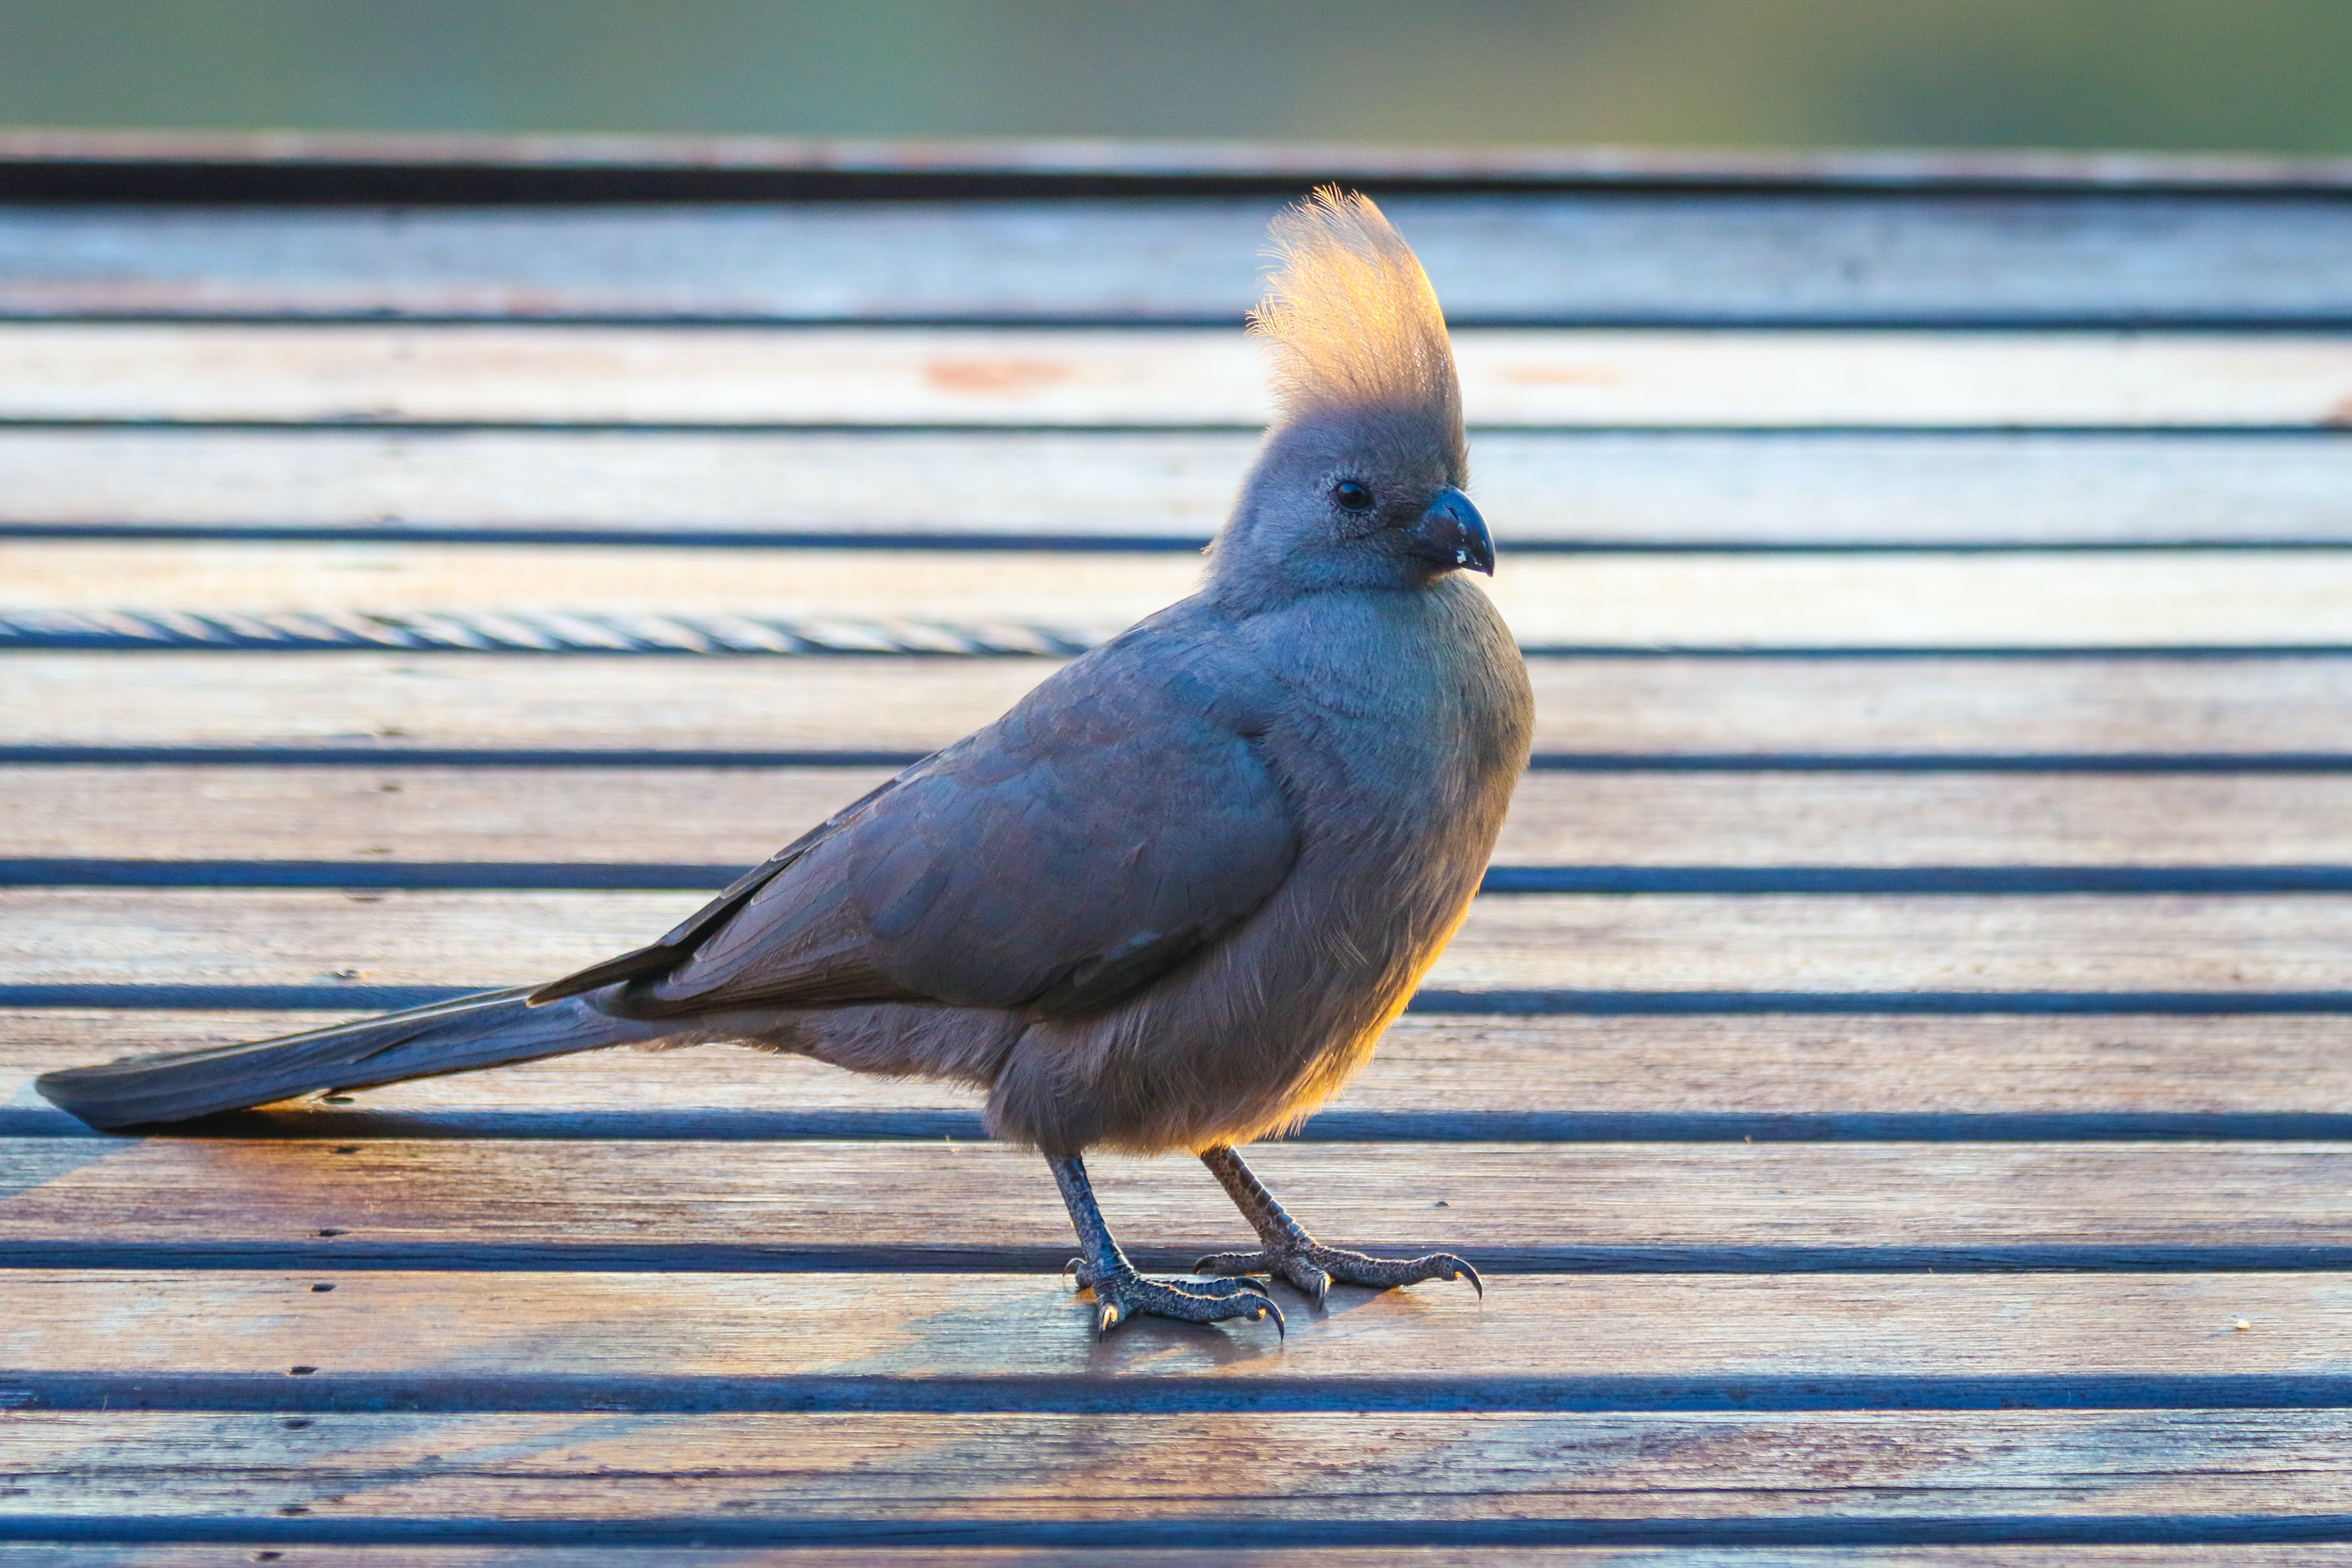 Gray Bird on Brown Wooden Surface